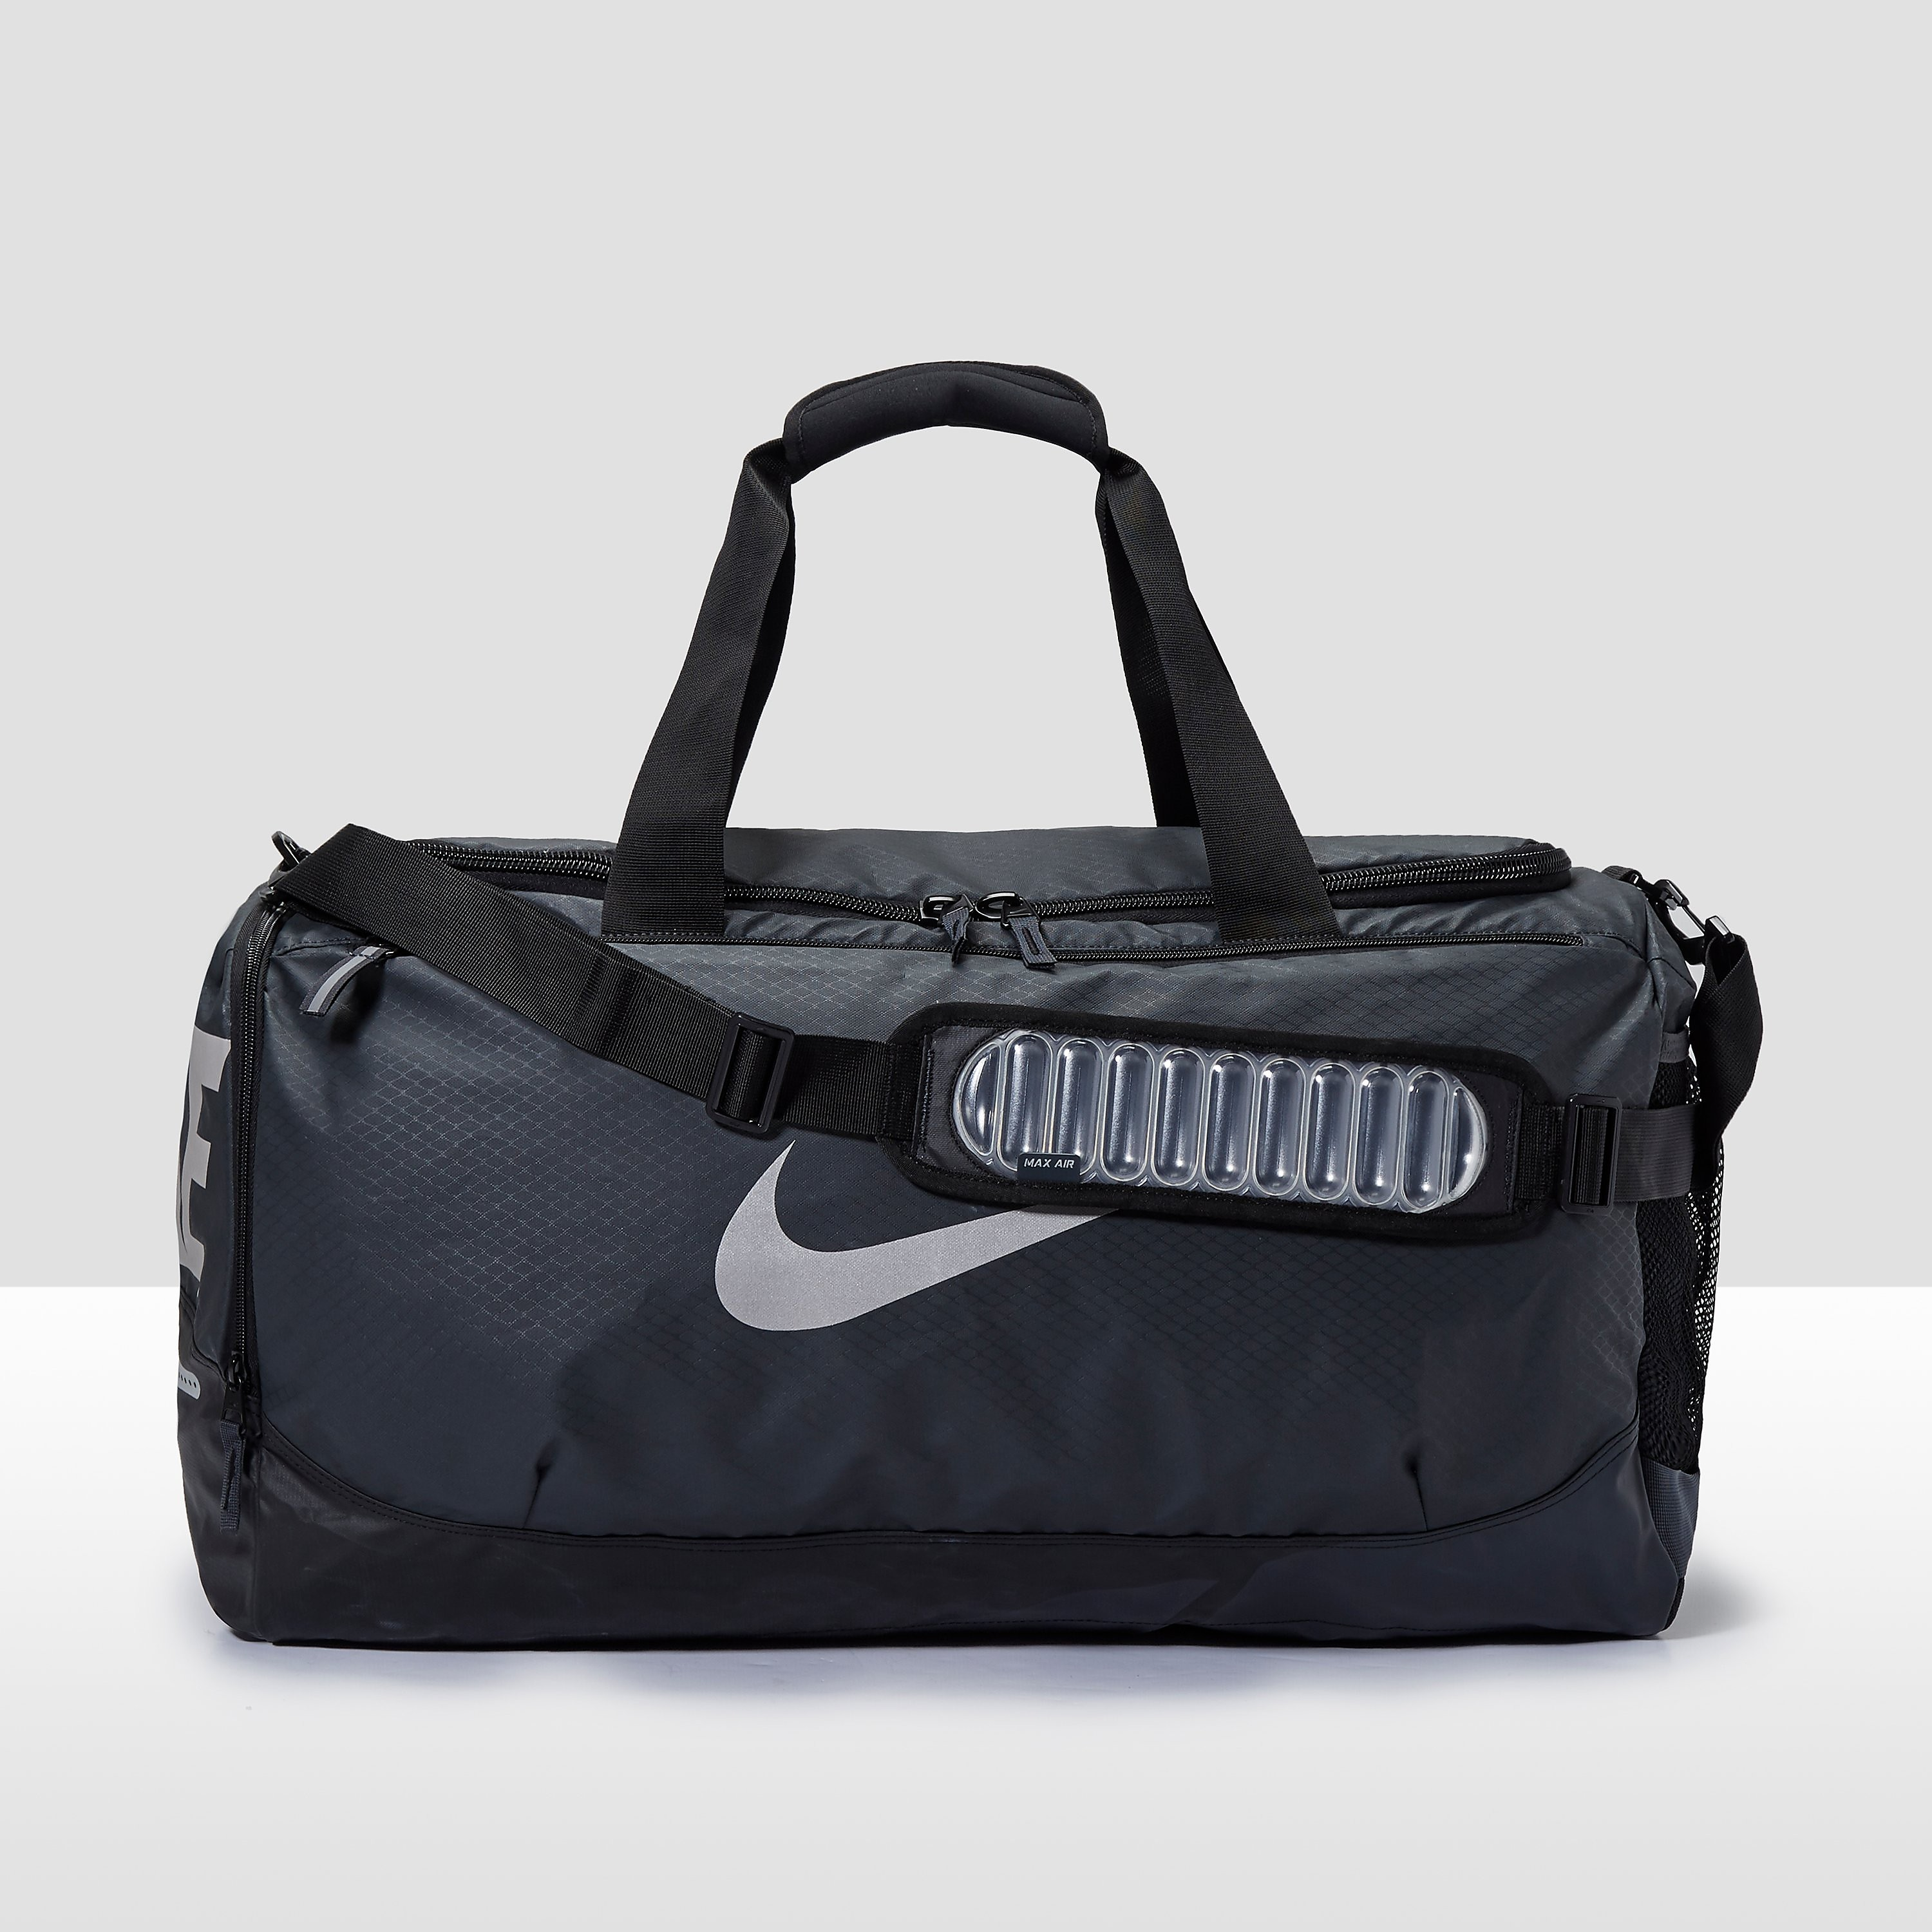 Nike Max Air Vapor Duffel Bag